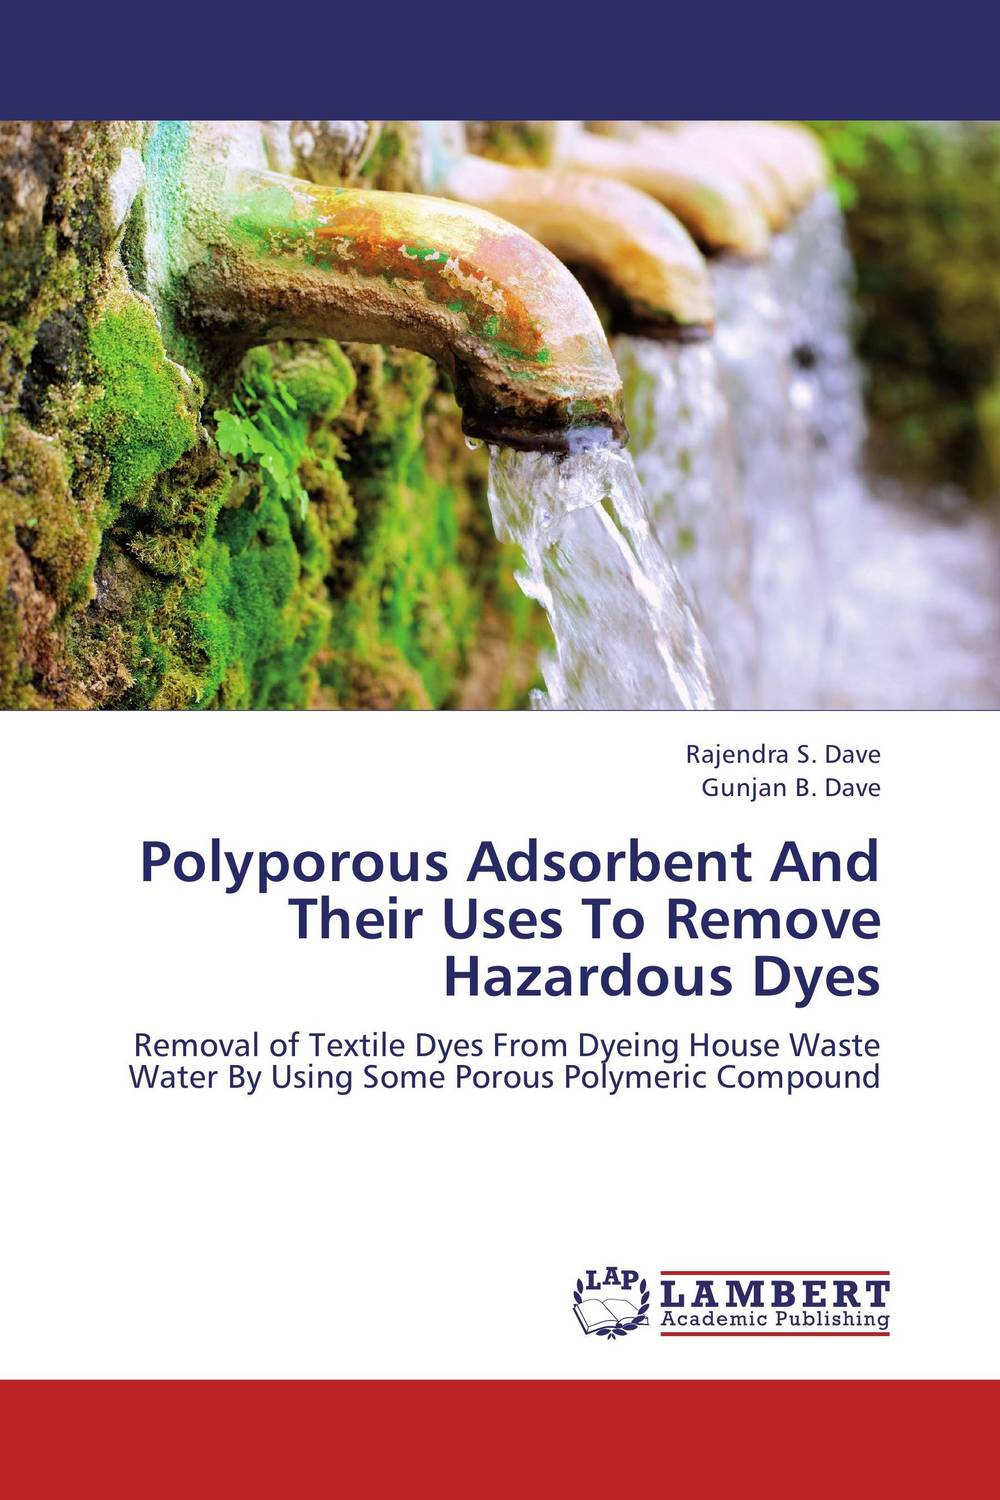 Polyporous Adsorbent And Their Uses To Remove Hazardous Dyes removal of ammonia arsenic and dyes from water by ozone microbubbles